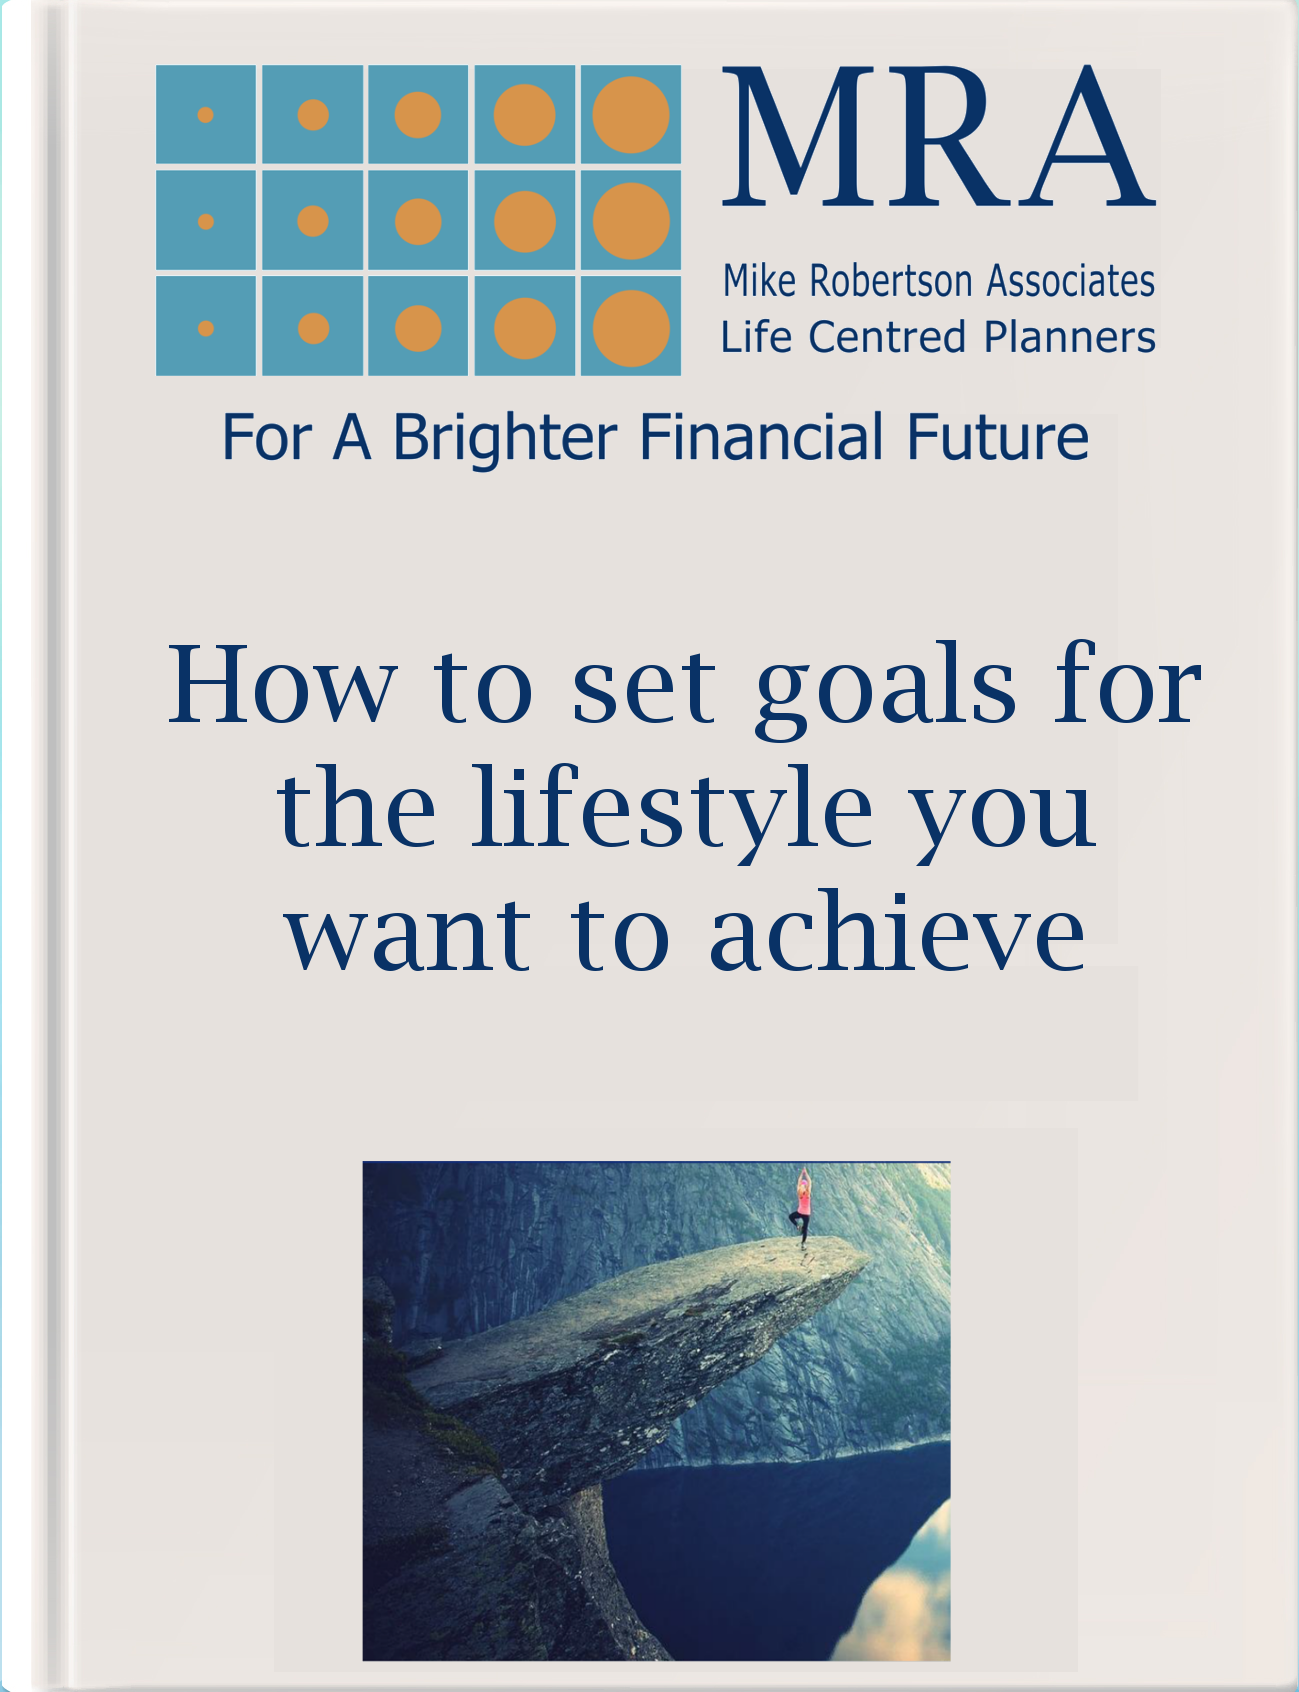 Download our Guide to Setting Goals for the Lifestyle you Want to Achieve